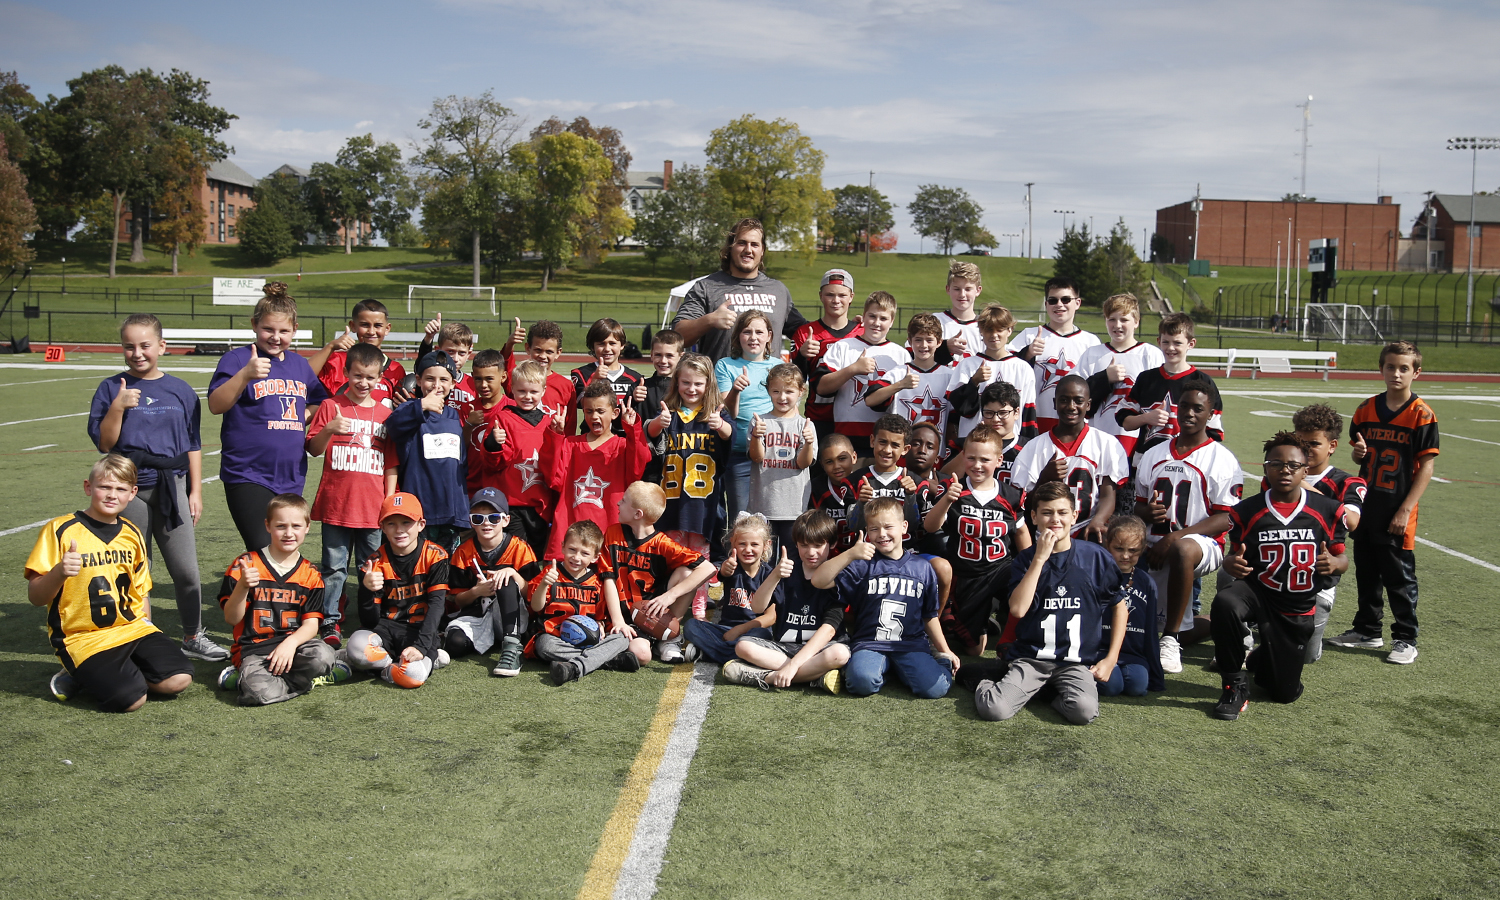 Guard for the Tampa Bay Buccaneers Ali Marpet '15 poses with Geneva Elementary School students.